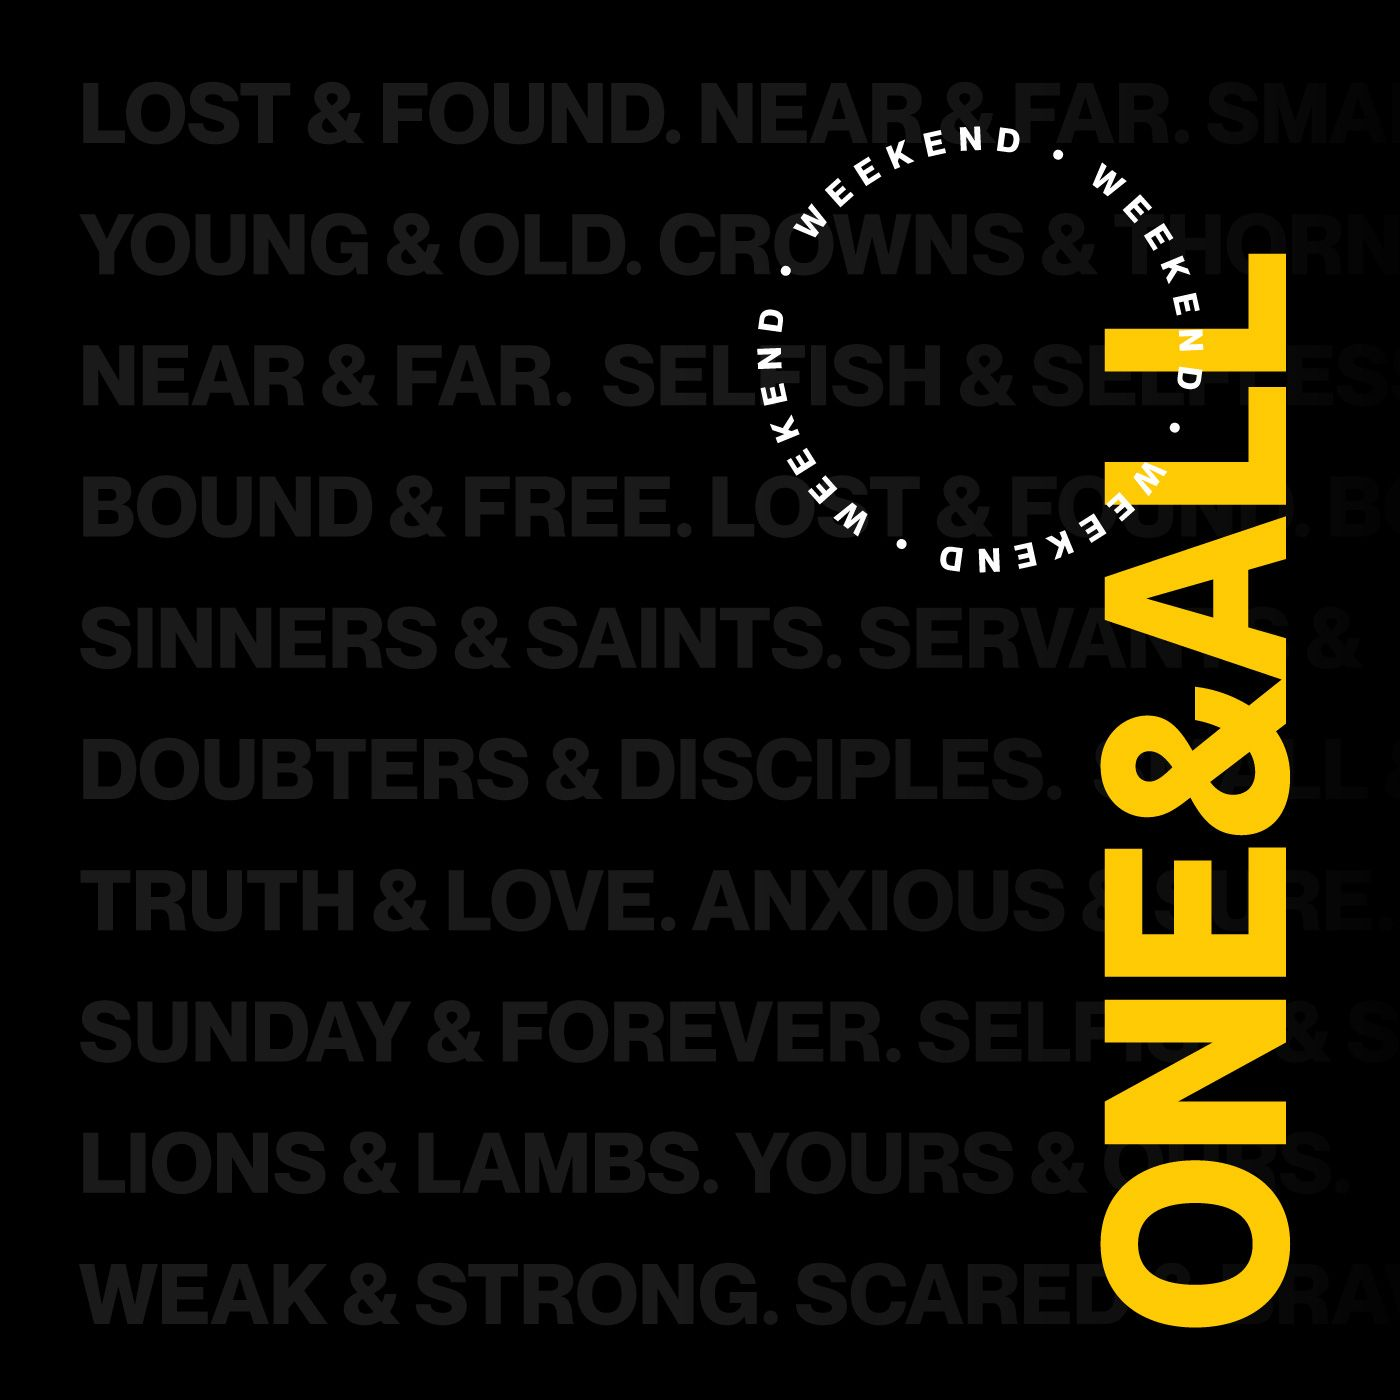 ONE&ALL Weekend Podcast